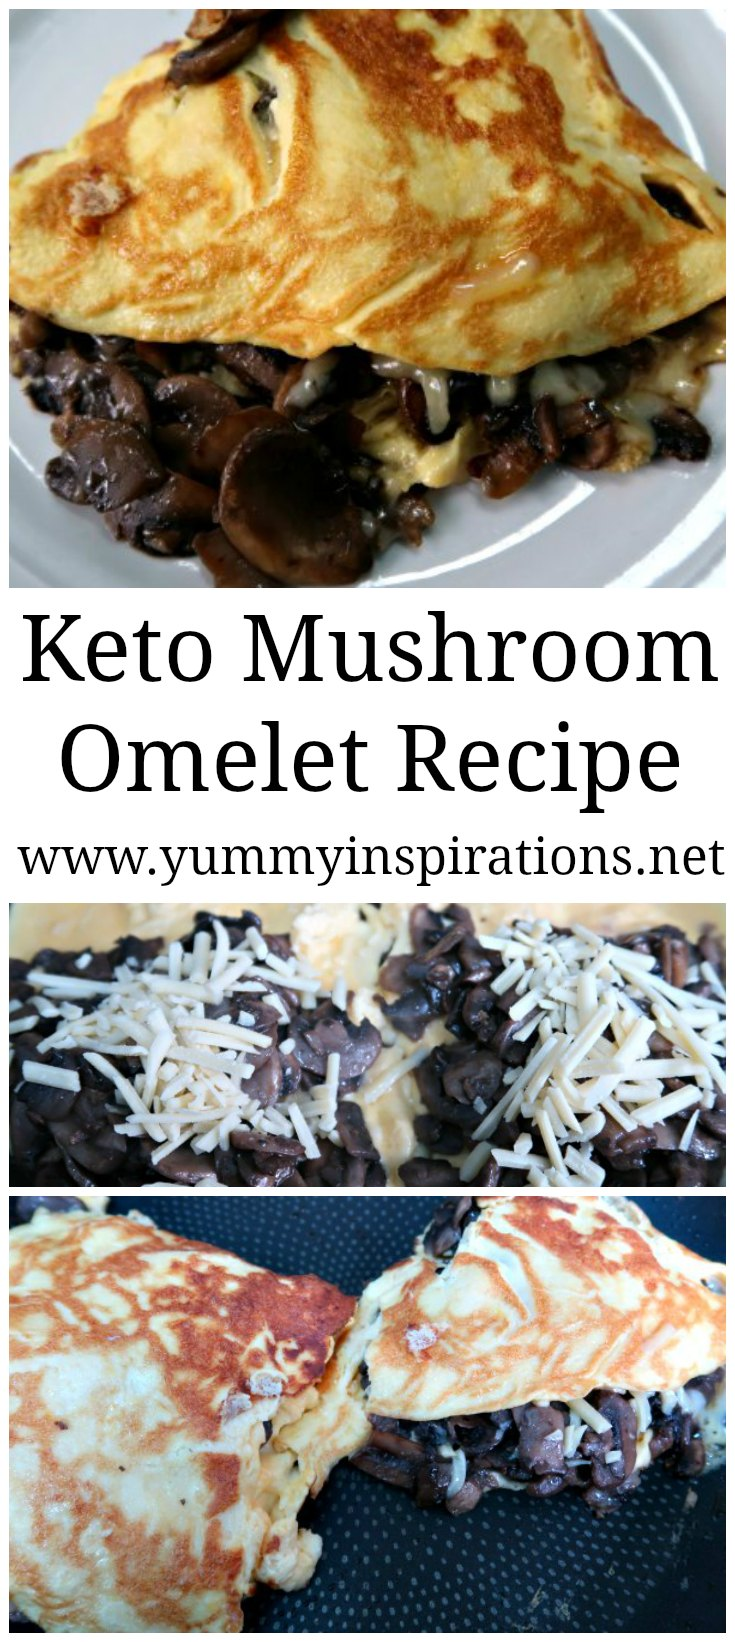 Keto Mushroom Omelet Recipe - Easy Low Carb & Gluten Free Omelette Breakfast Recipes with fillings ideas for everyday.